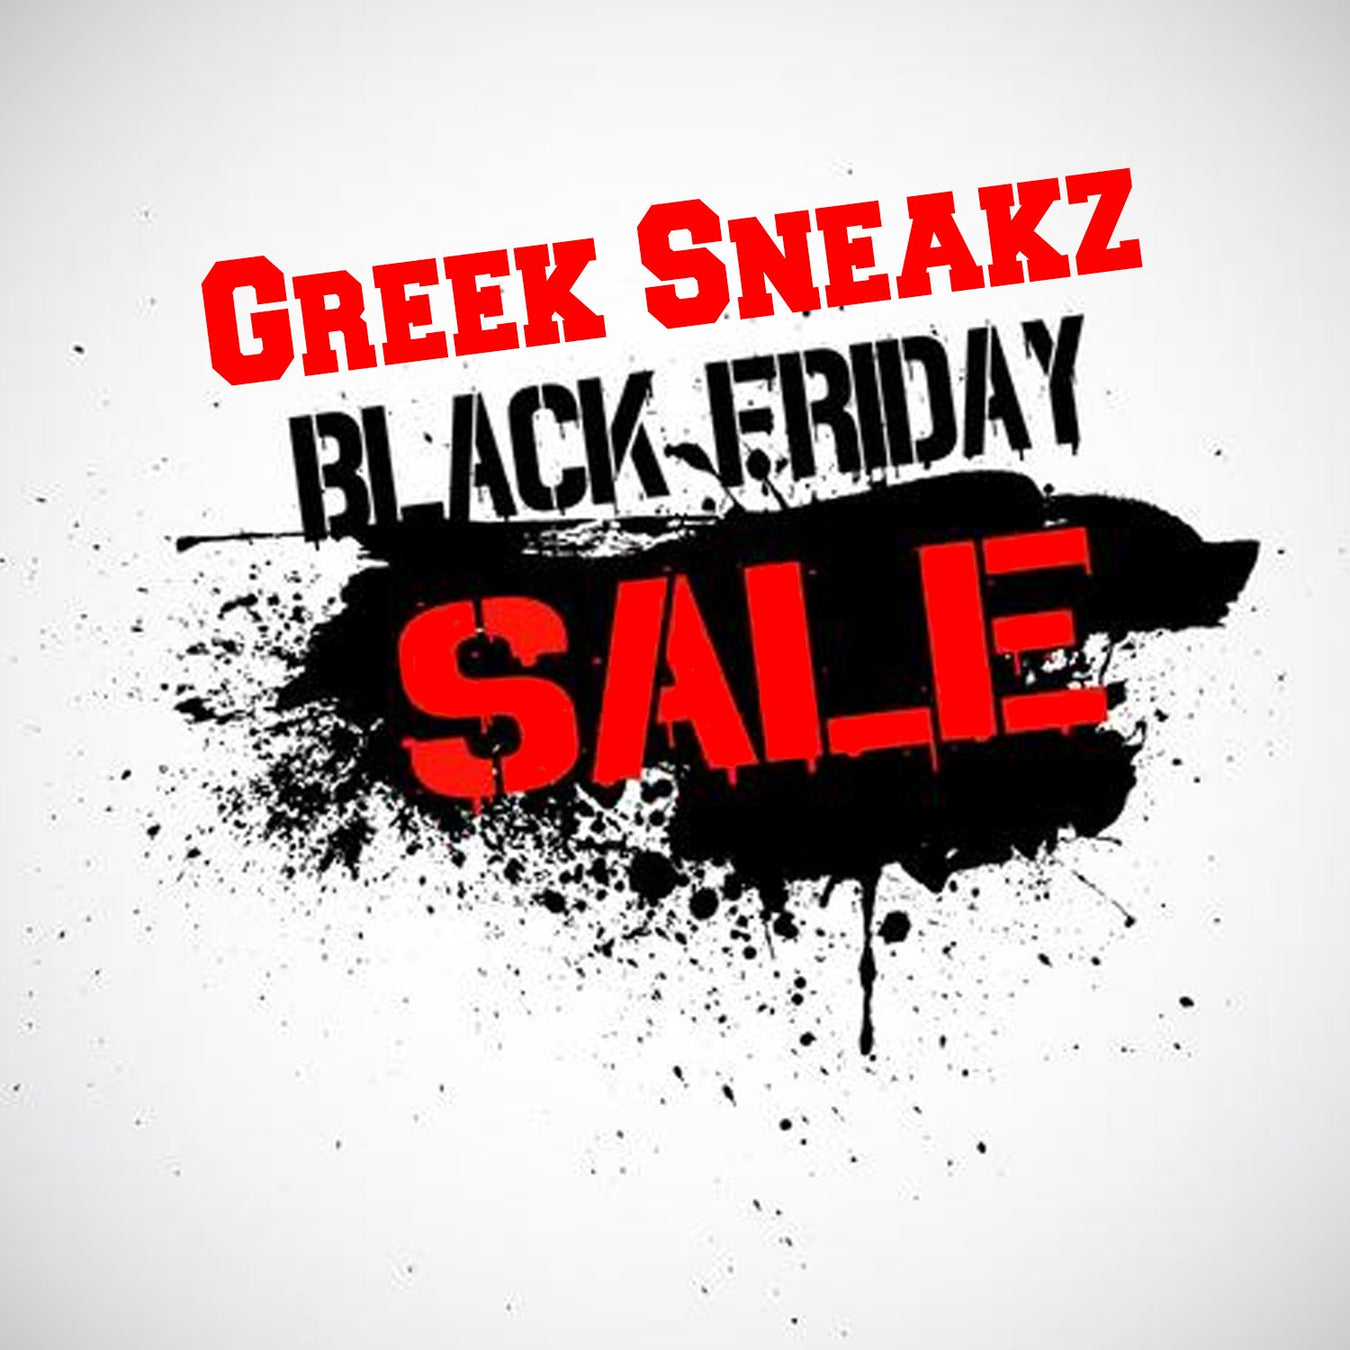 Greek Sneakz Black Friday Deals